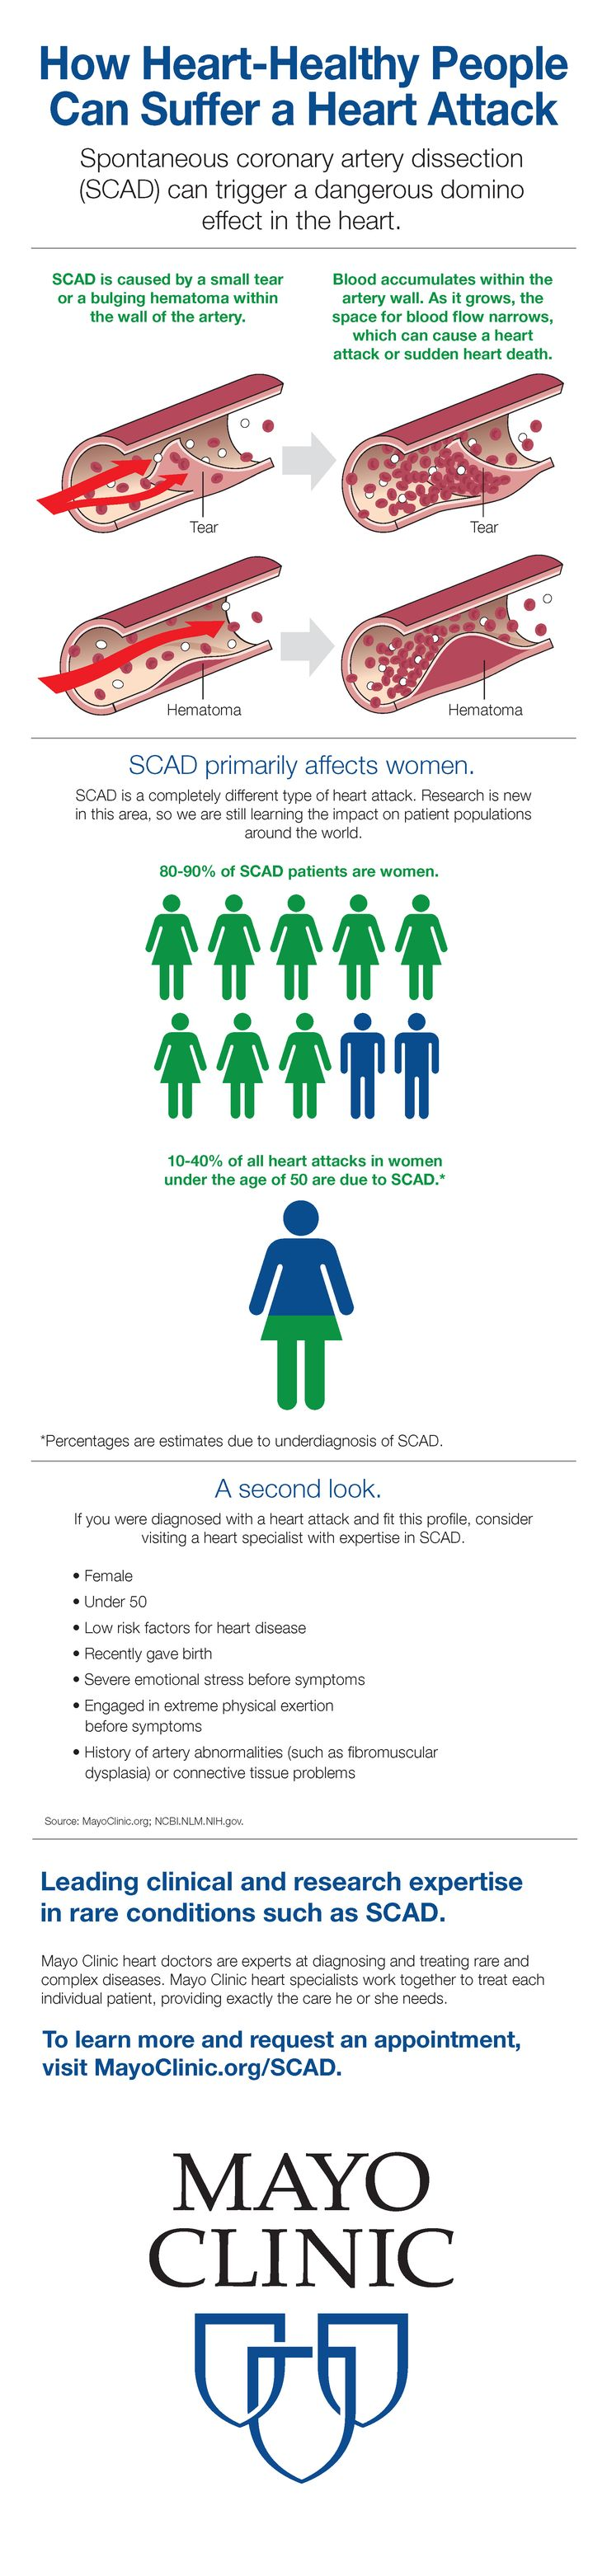 Spontaneous coronary artery dissection (SCAD) can trigger a dangerous domino effect in the heart.